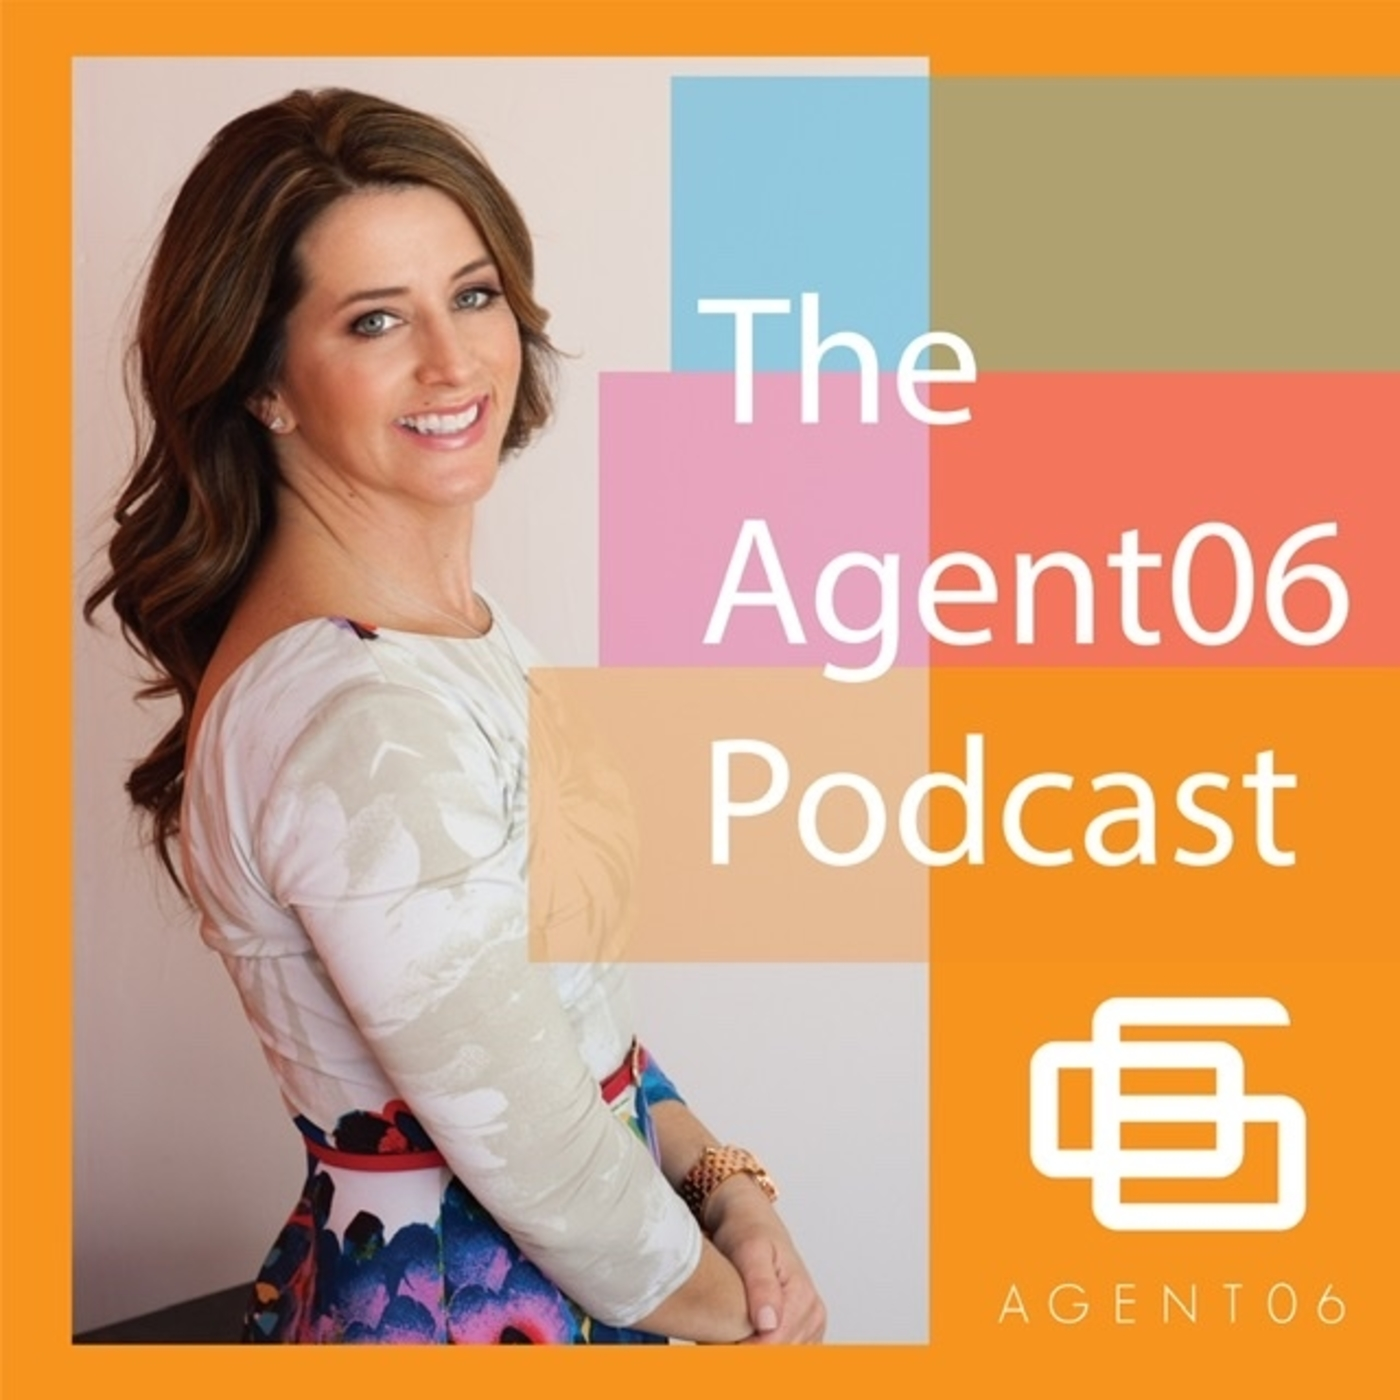 The Agent06 Podcast show art